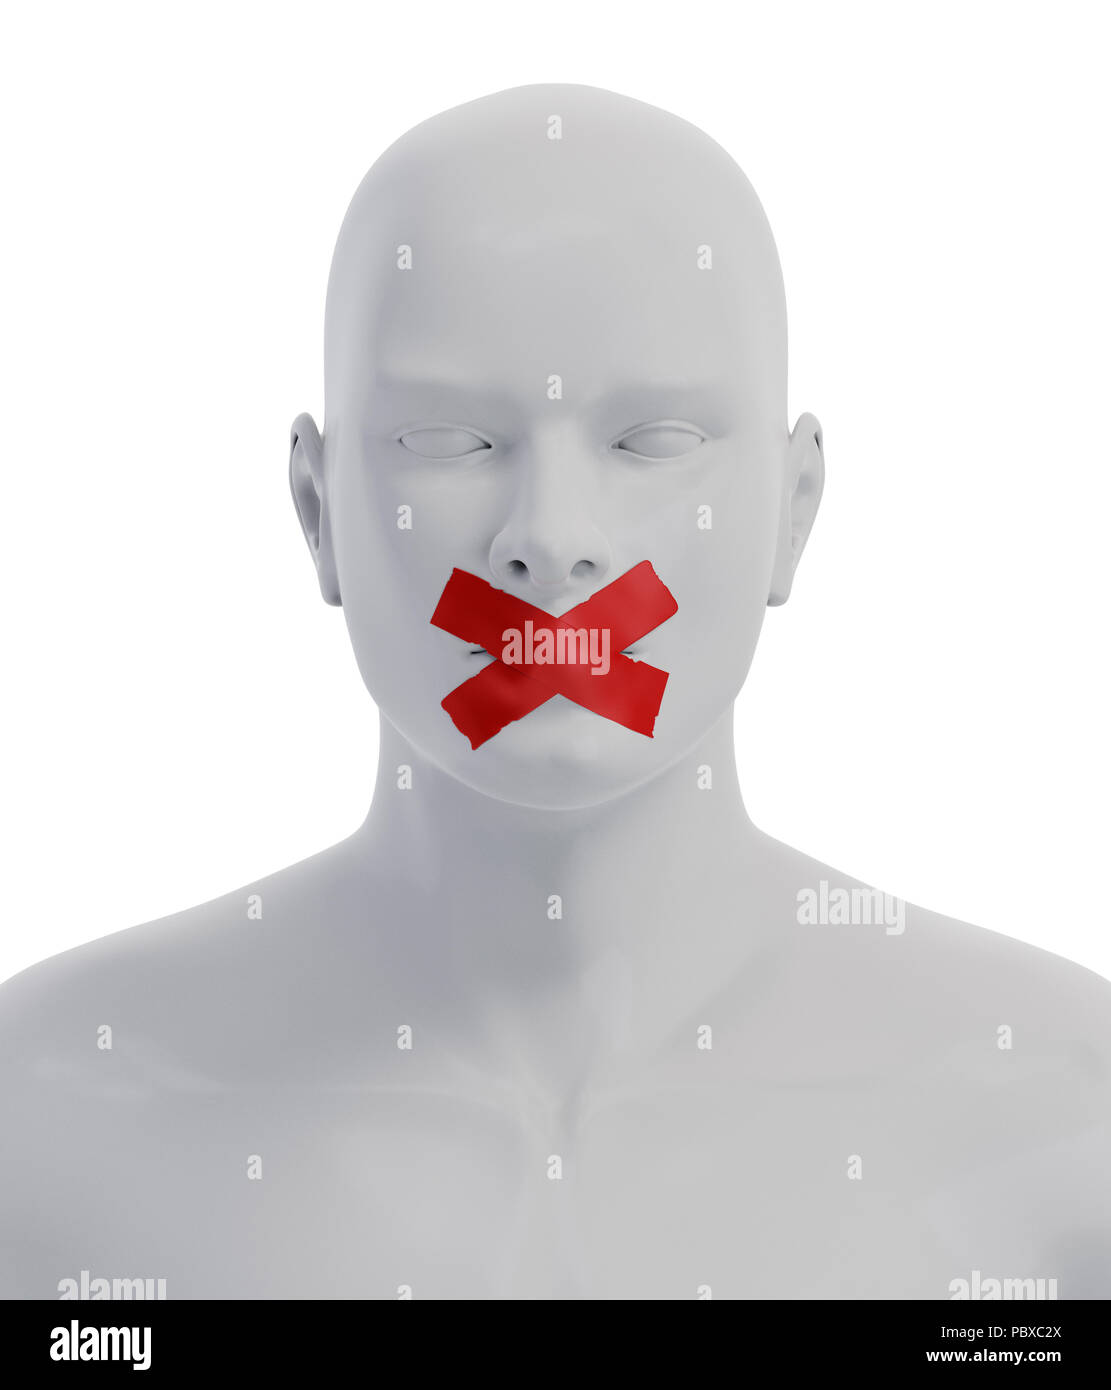 Man with Mouth Sealed on Duct Tape. Freedom of Speech Concept. 3D illustration - Stock Image